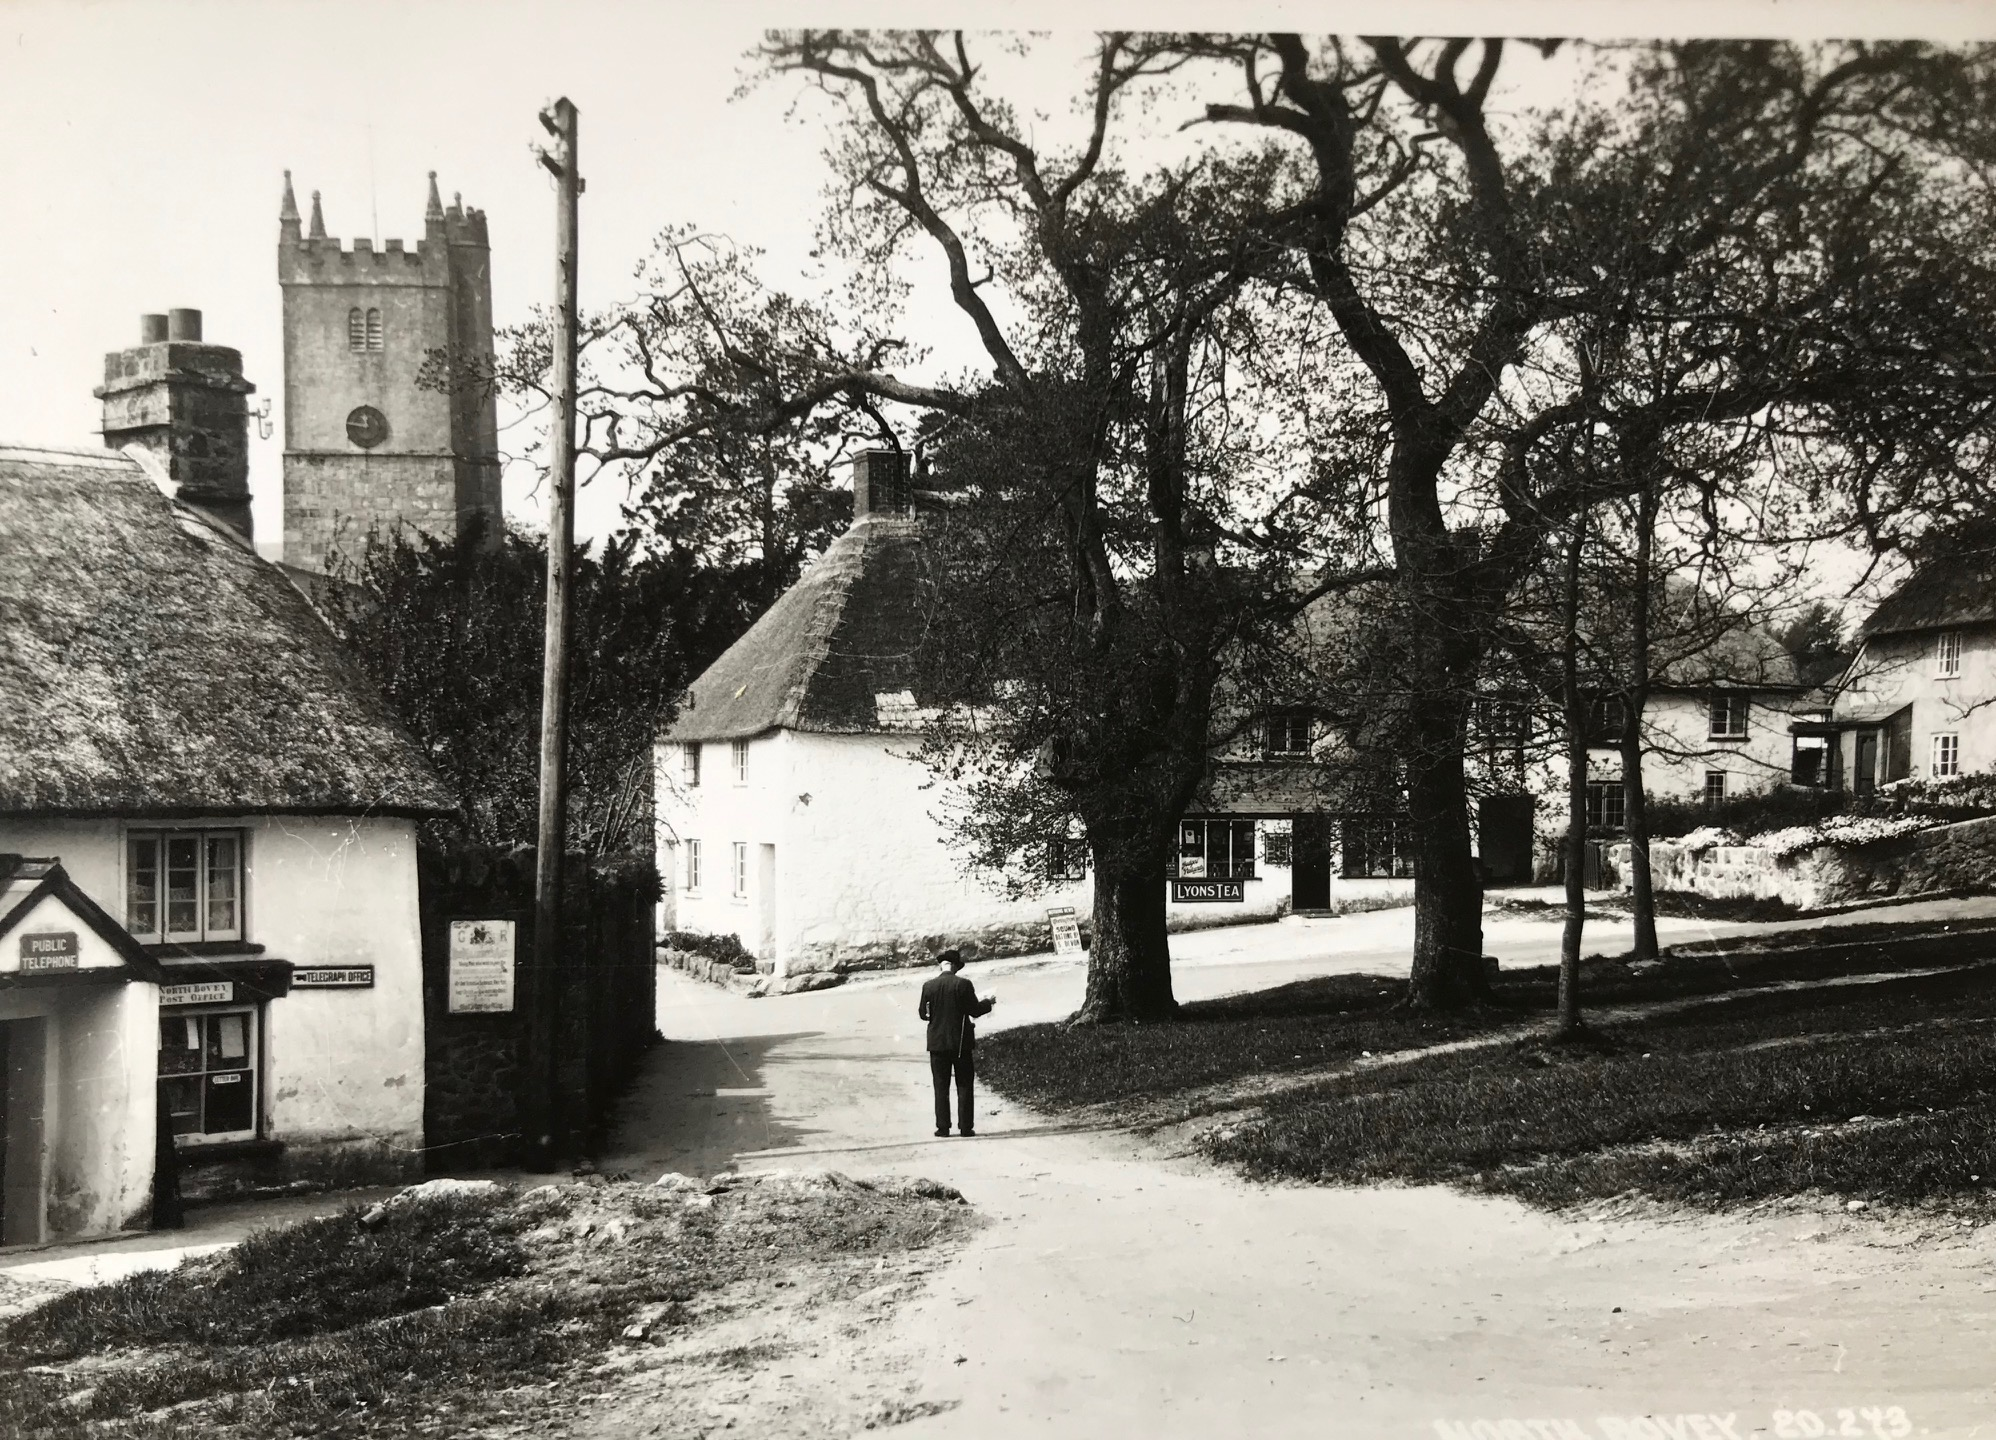 Then: North Bovey in the early 1900s.